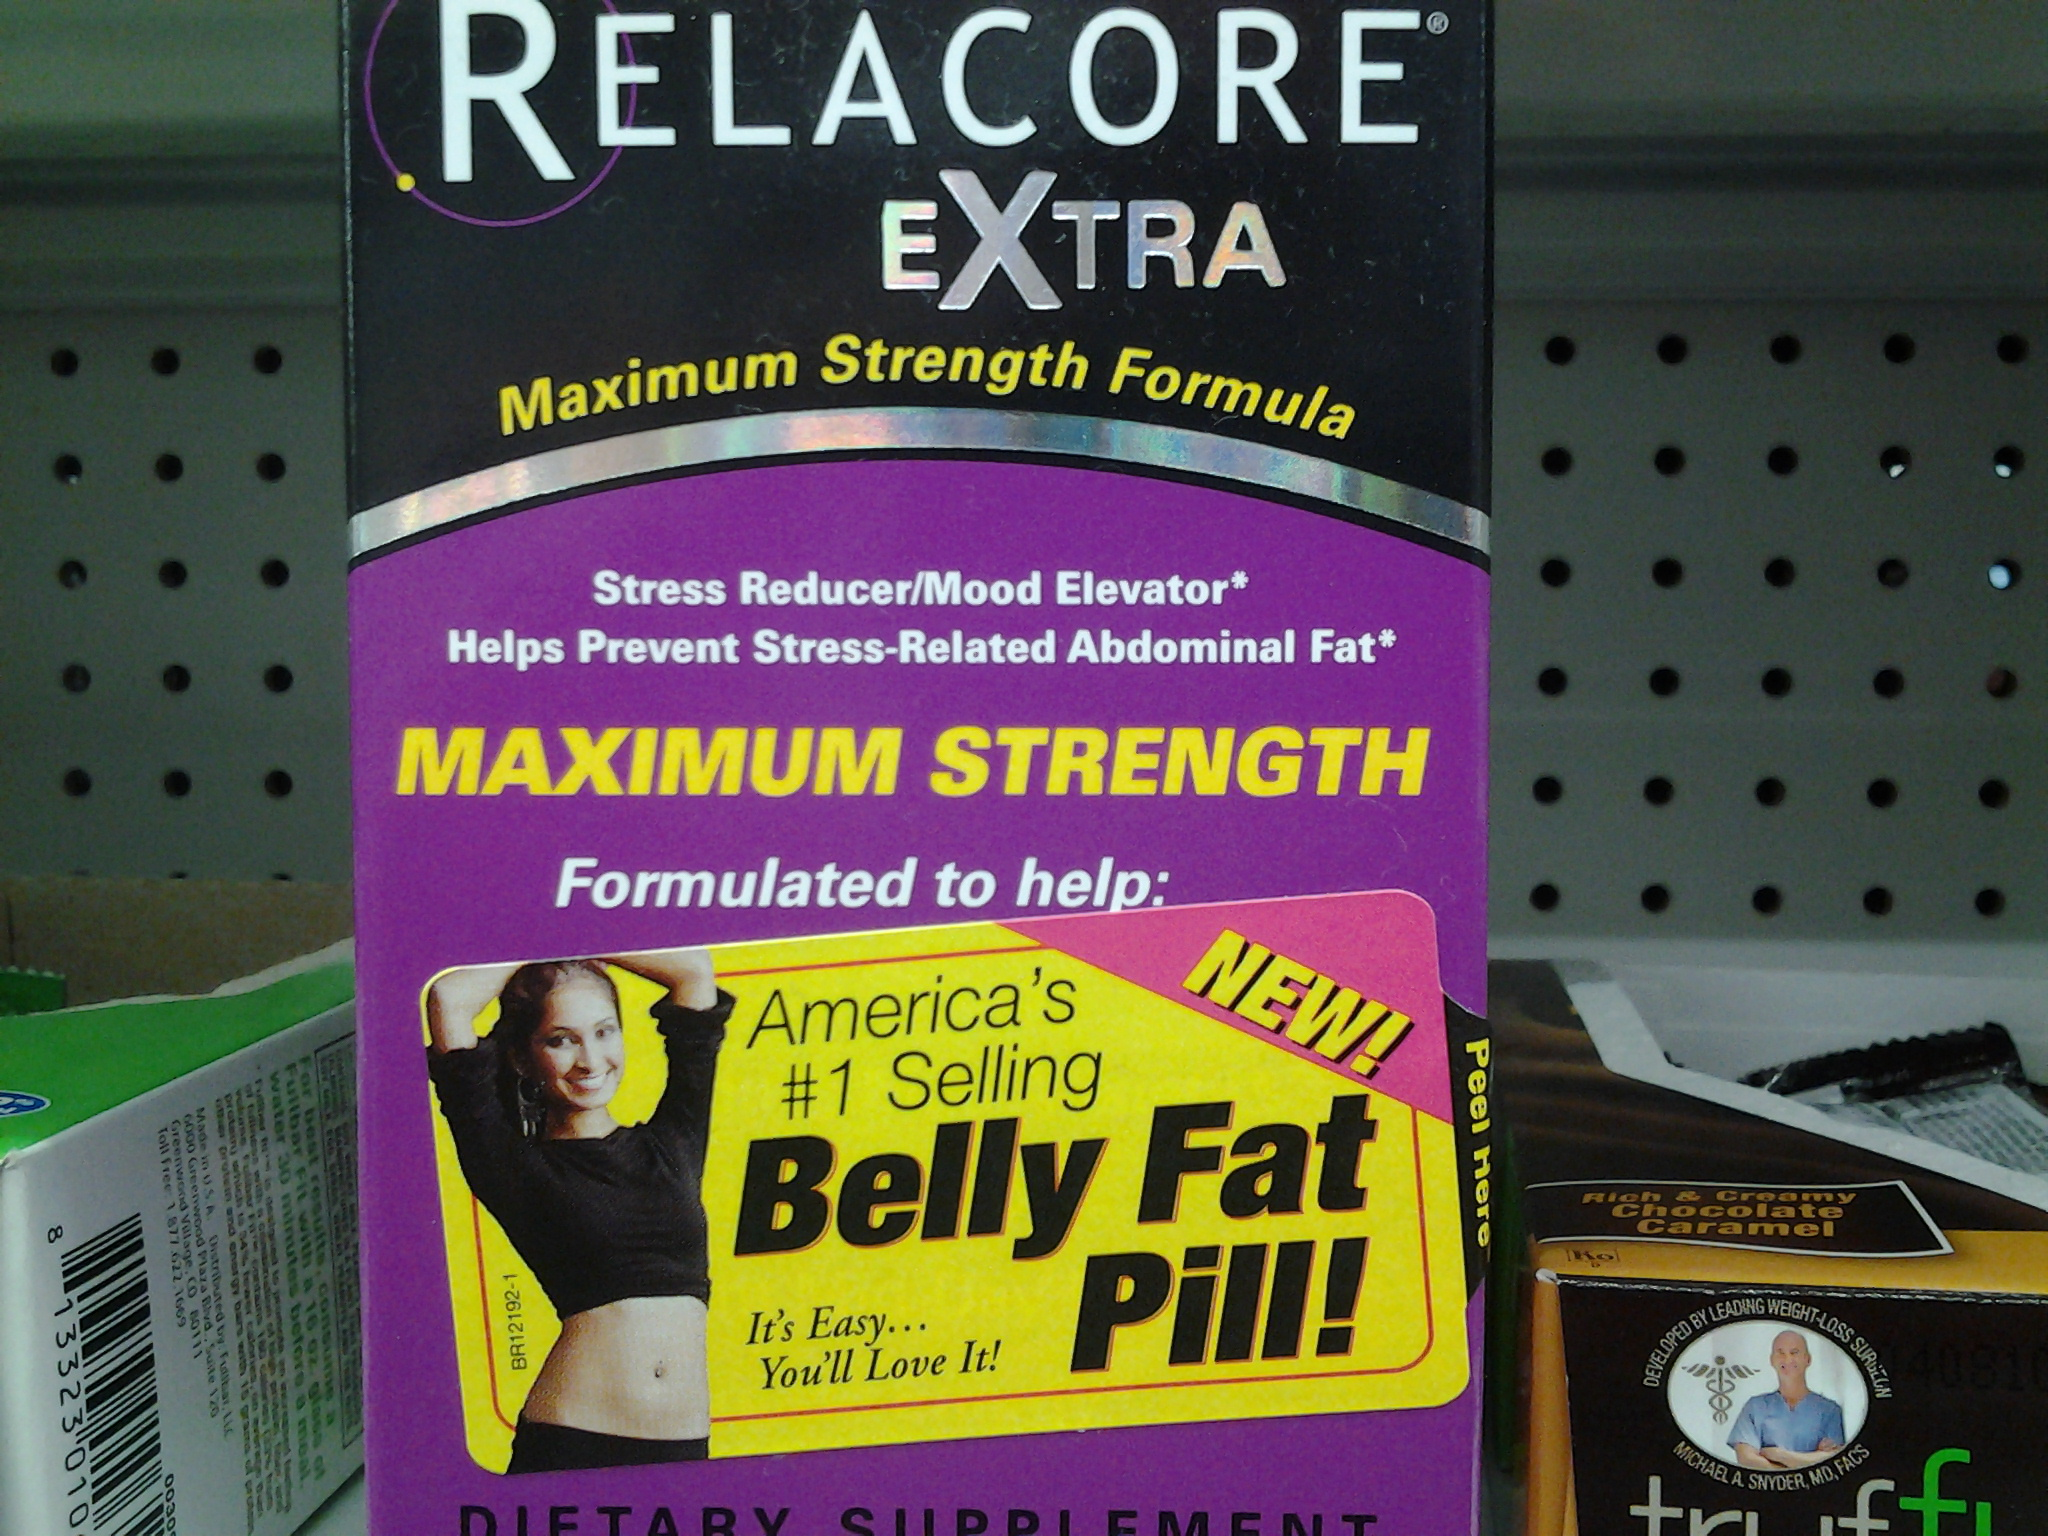 relacore-weight-loss